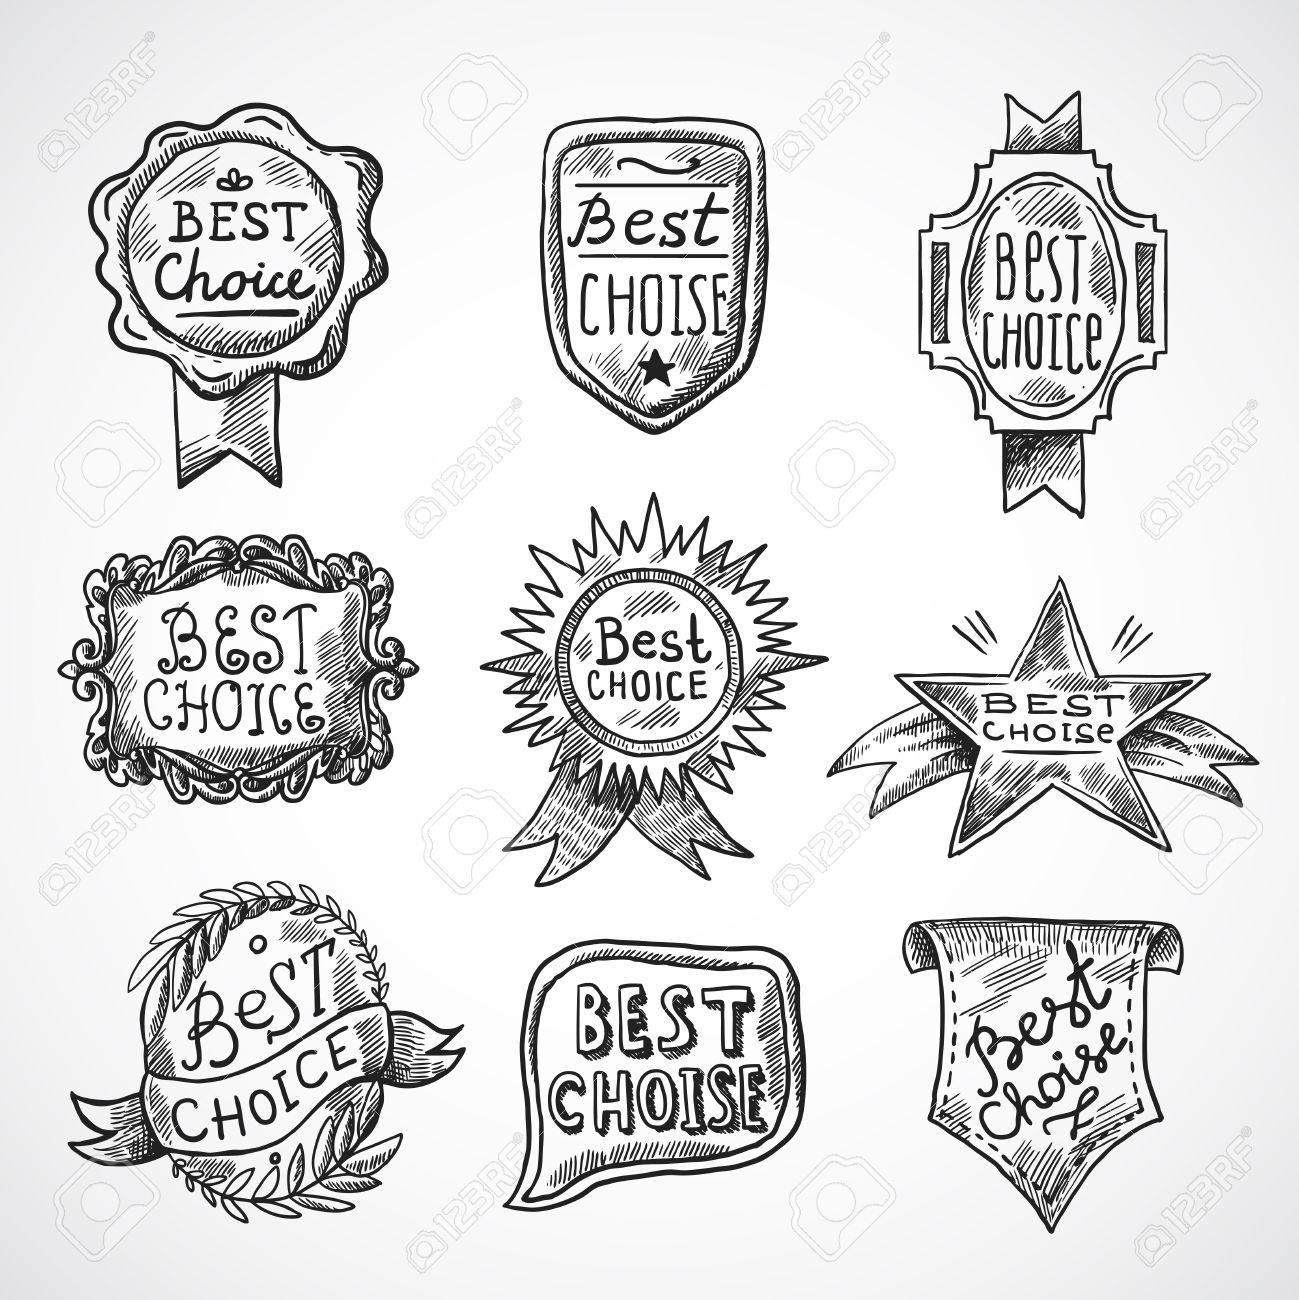 1299x1300 Best Choice Advertising And Promotion Badge Black Sketch Set